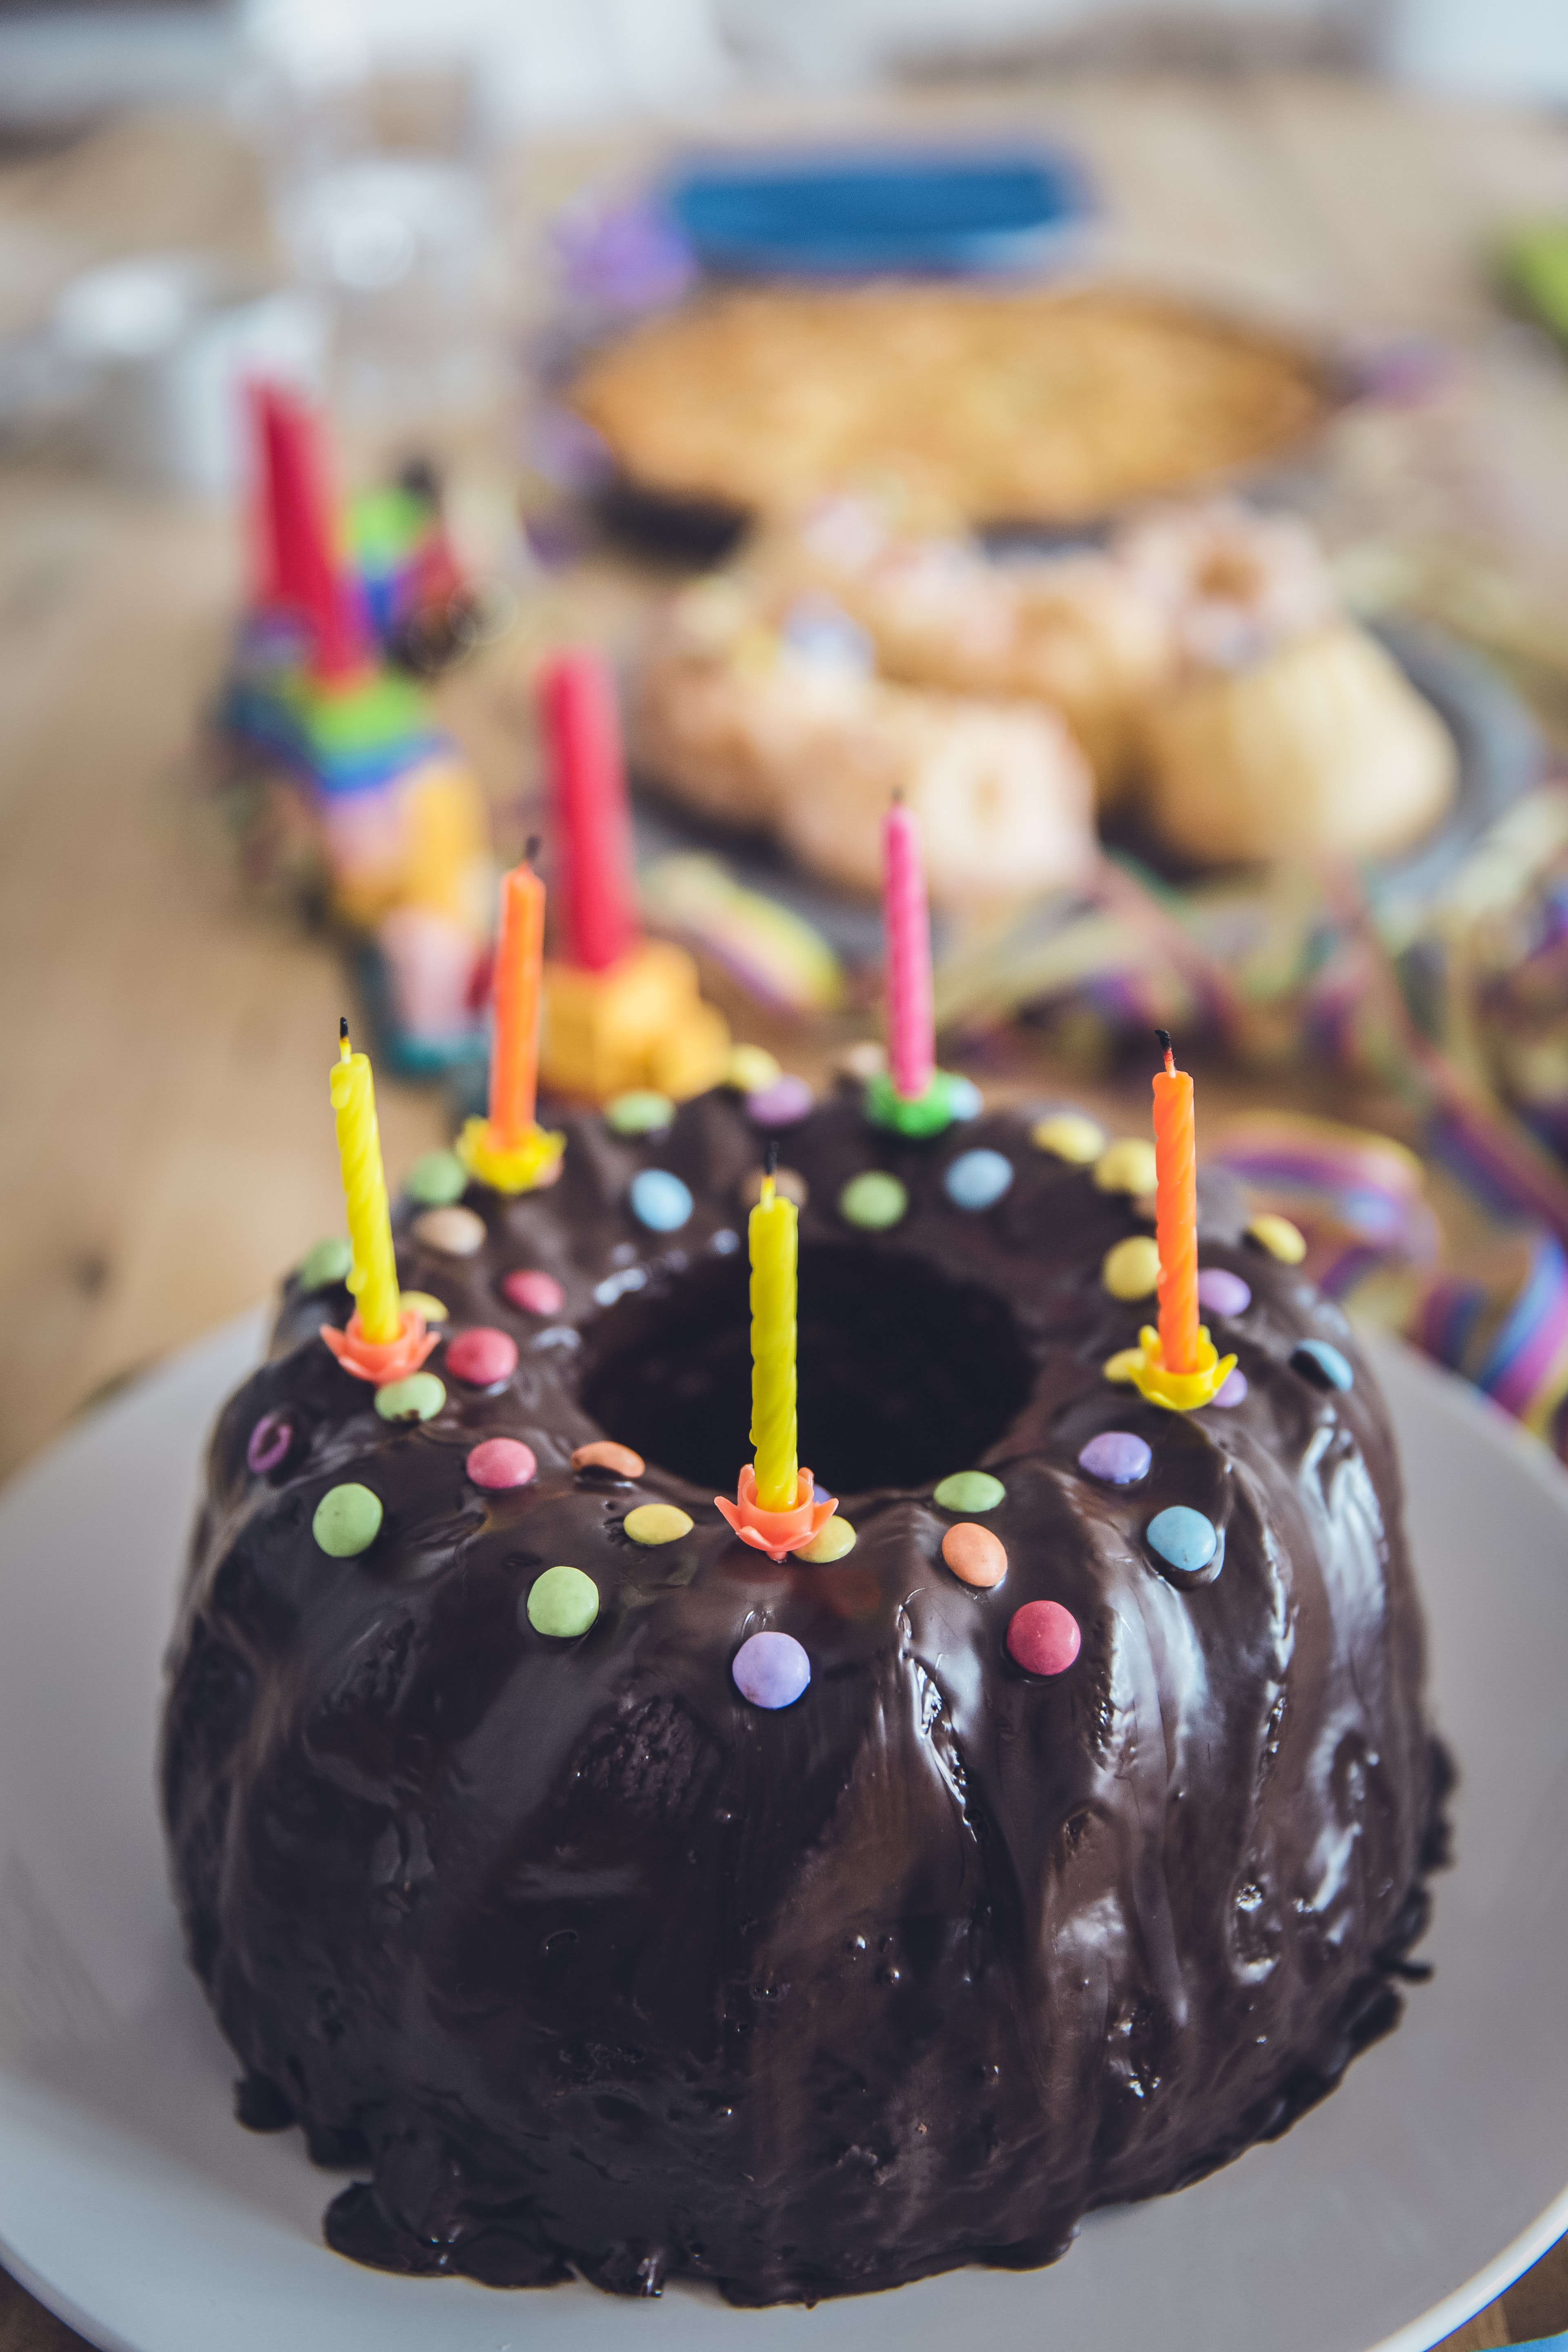 A chocolate covered bundt birthday cake with coloured candy and candles on top